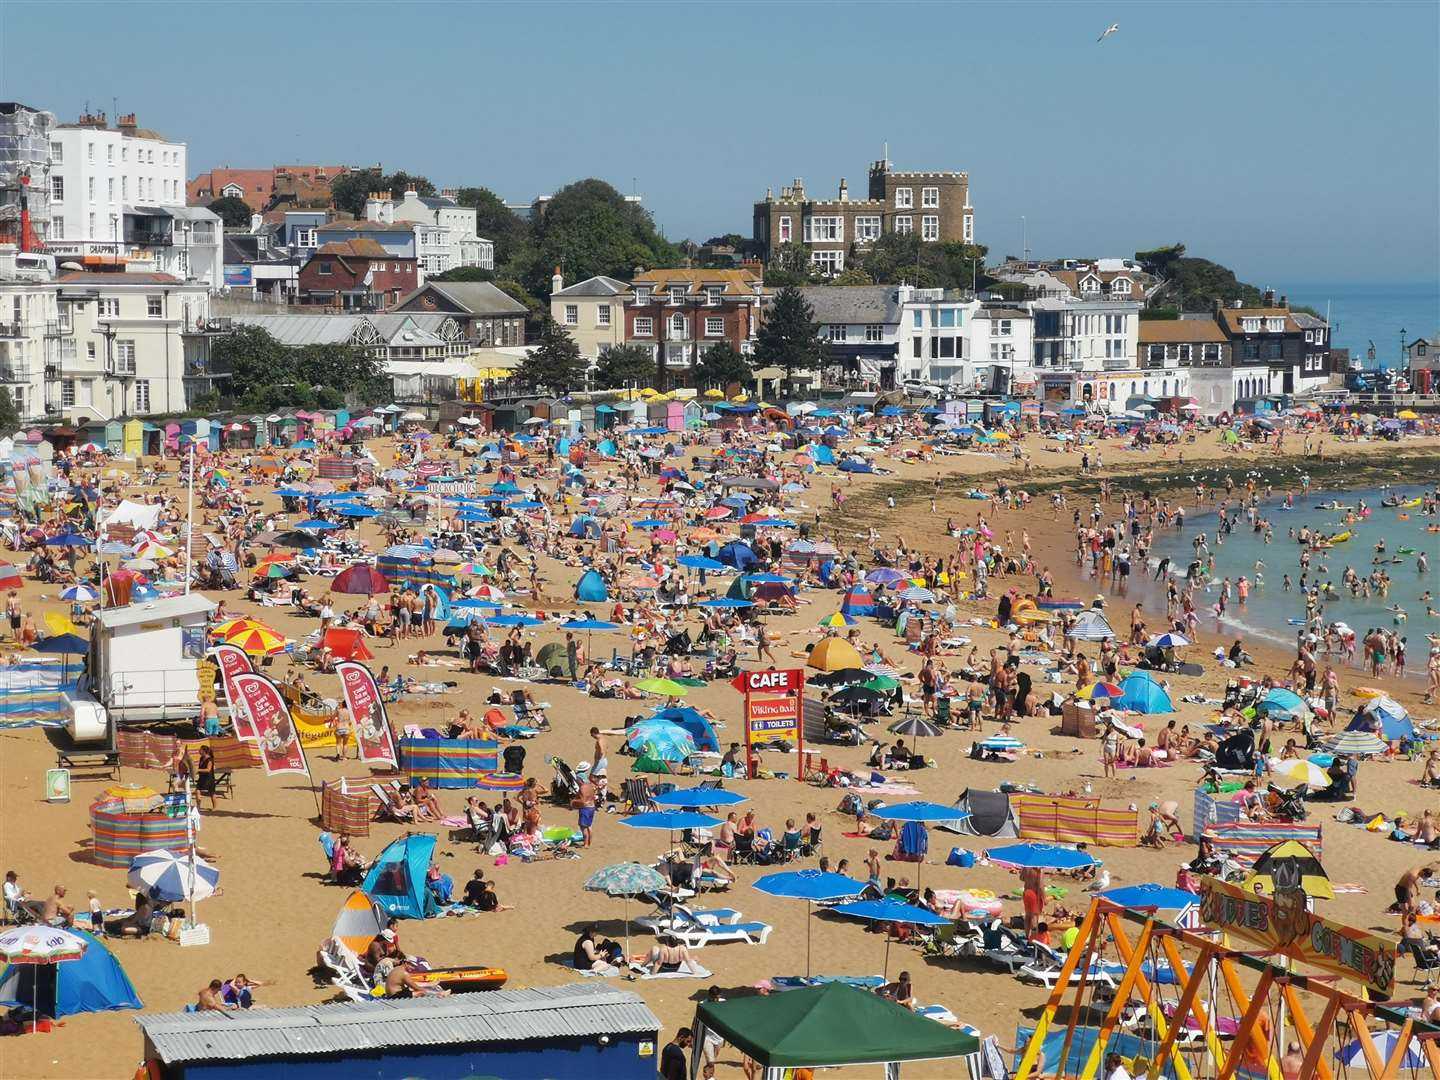 Crowds packed onto Thanet beaches in the heatwave (39593472)